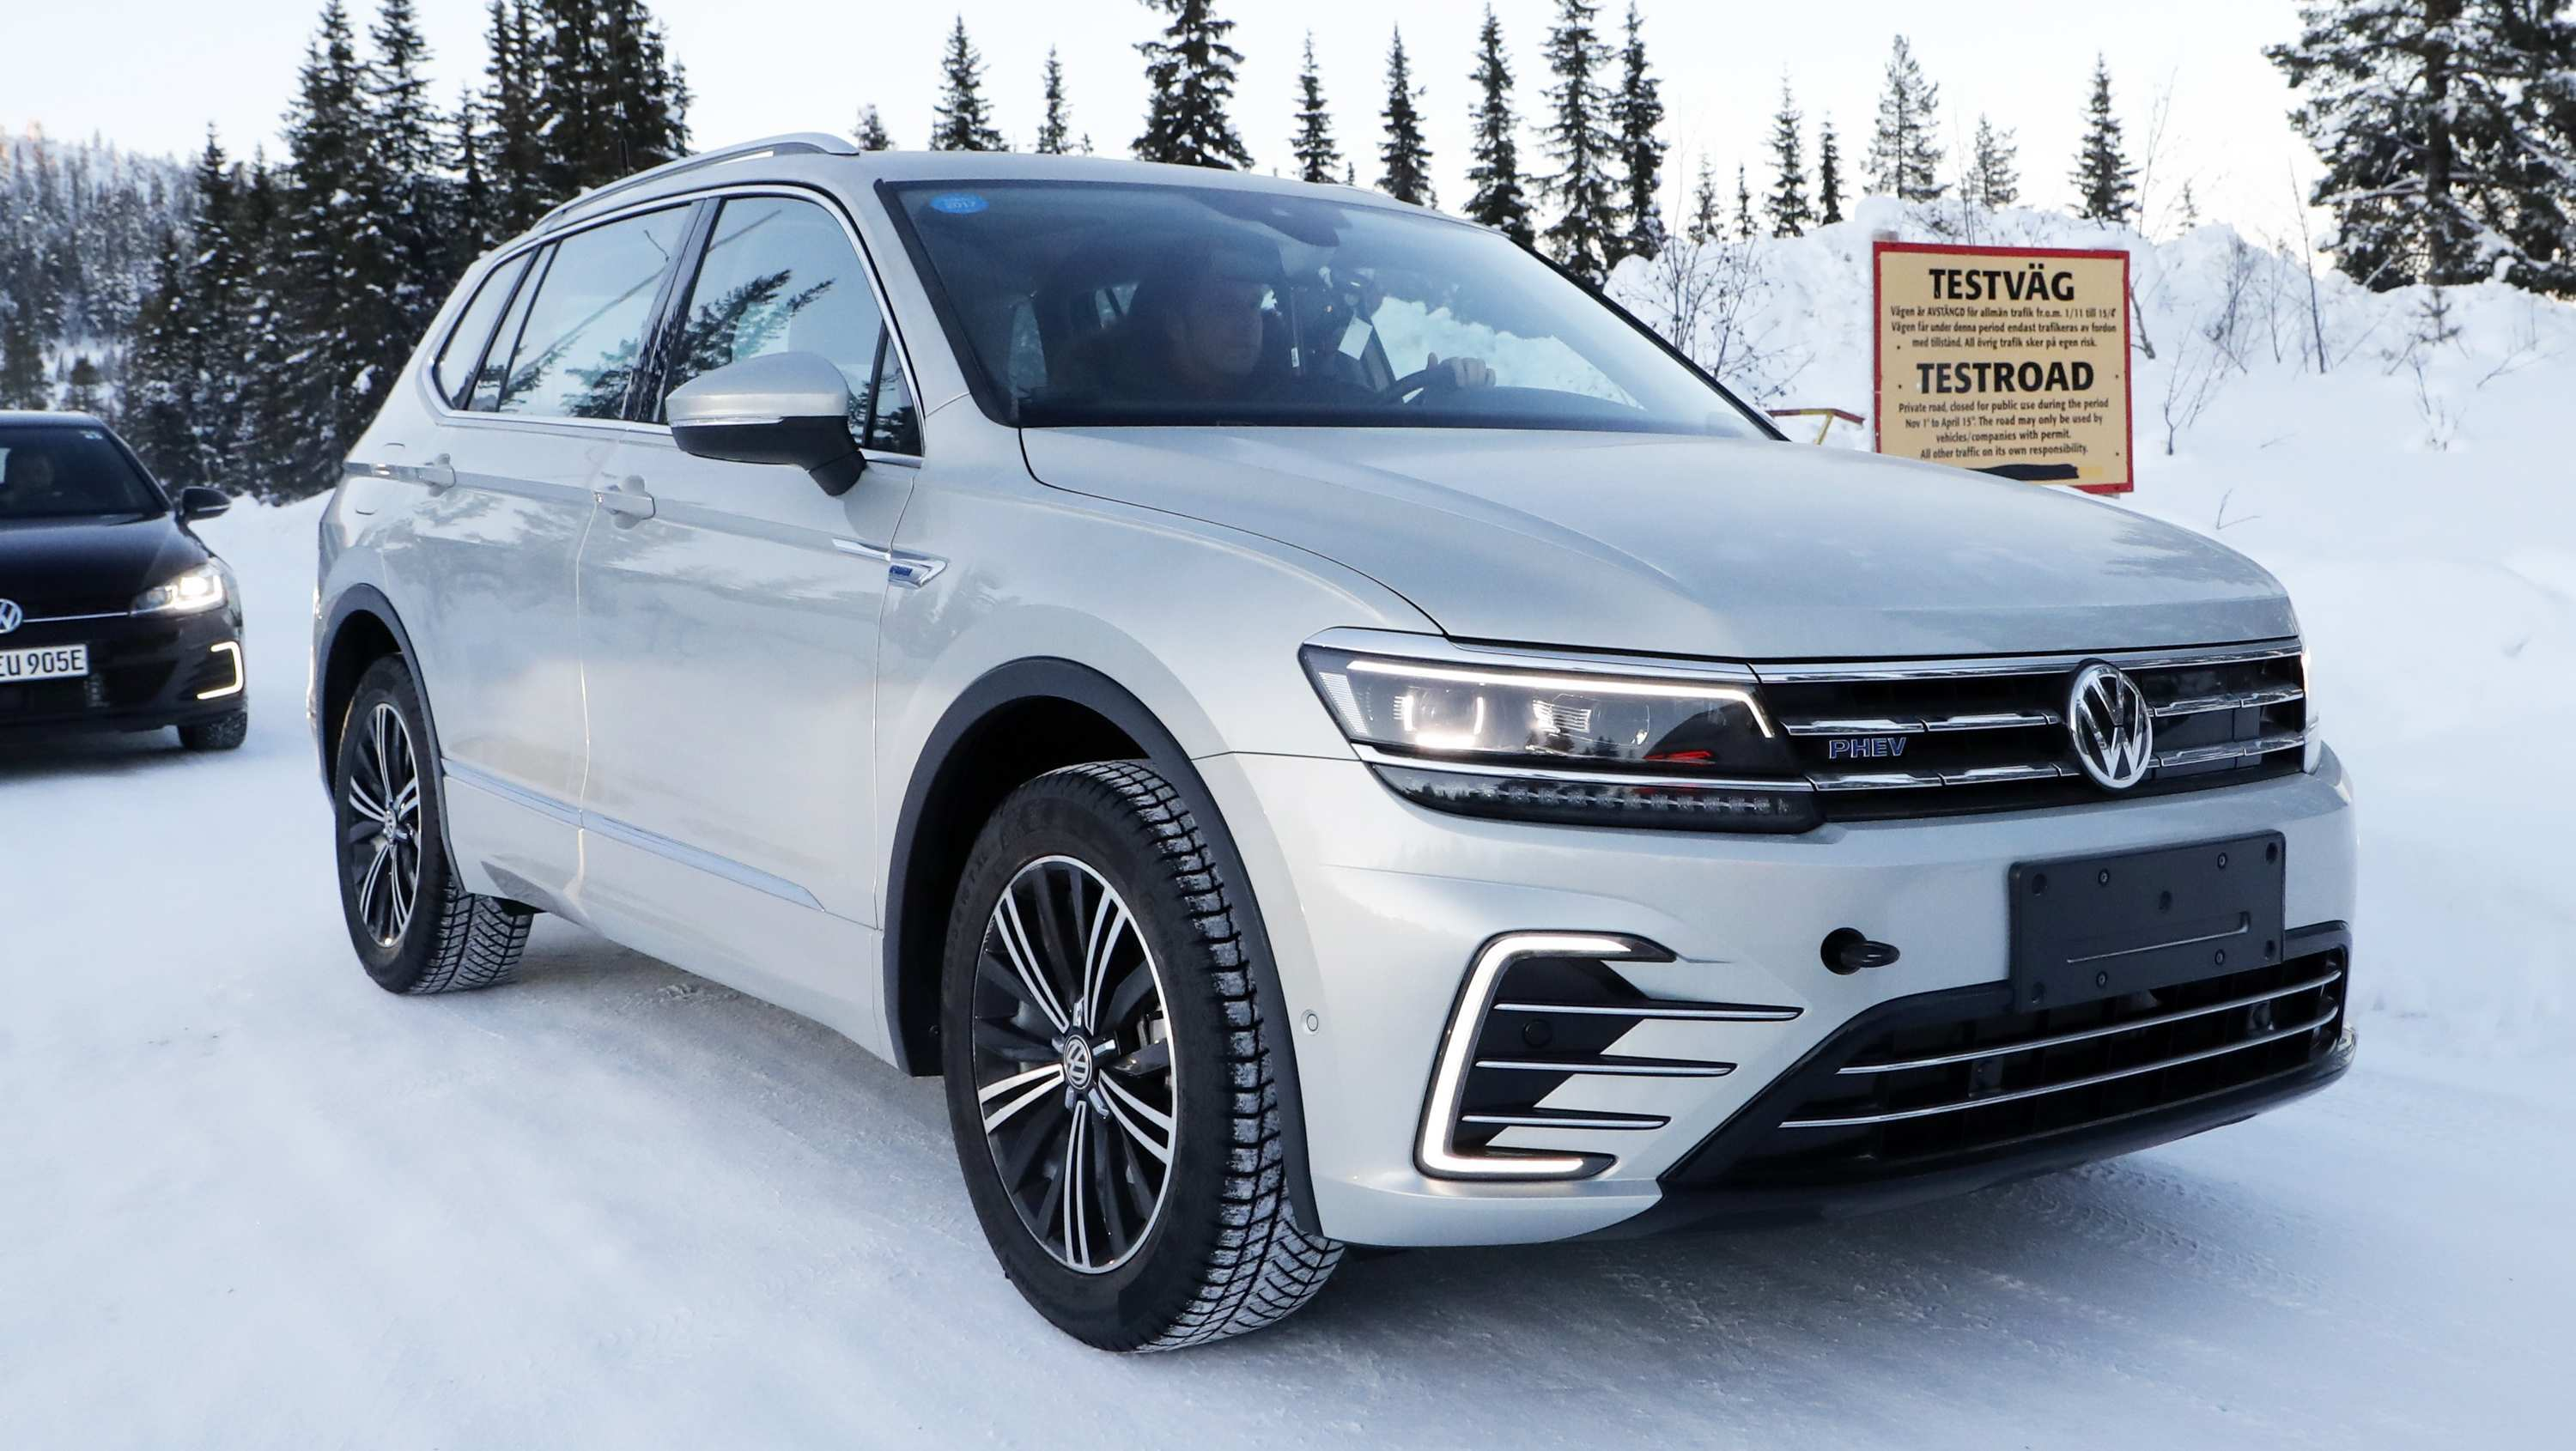 65 New Volkswagen Hybrid 2019 Performance And New Engine Photos for Volkswagen Hybrid 2019 Performance And New Engine